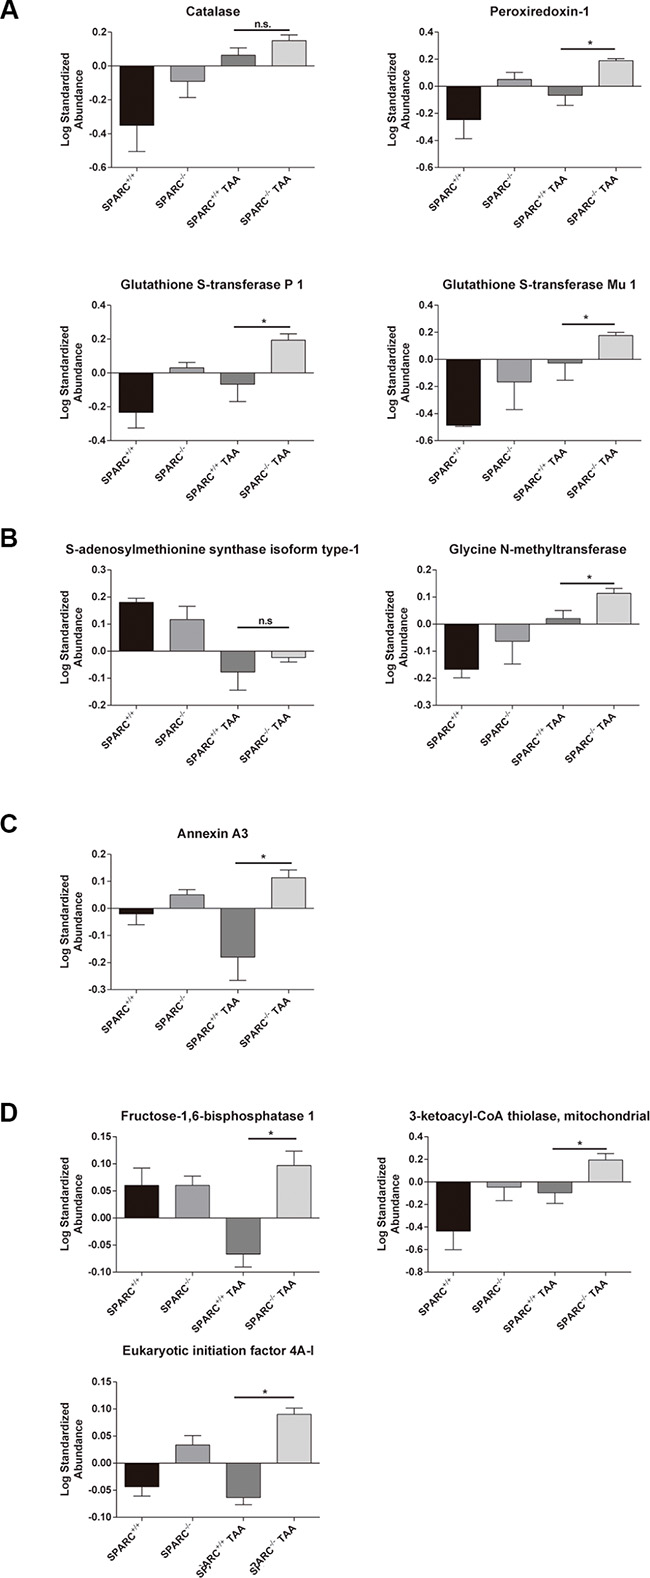 Hepatic proteome profiling revealed the induction of detoxification of oxygen reactive species and liver regeneration pathways in animals chronically exposed to TAA